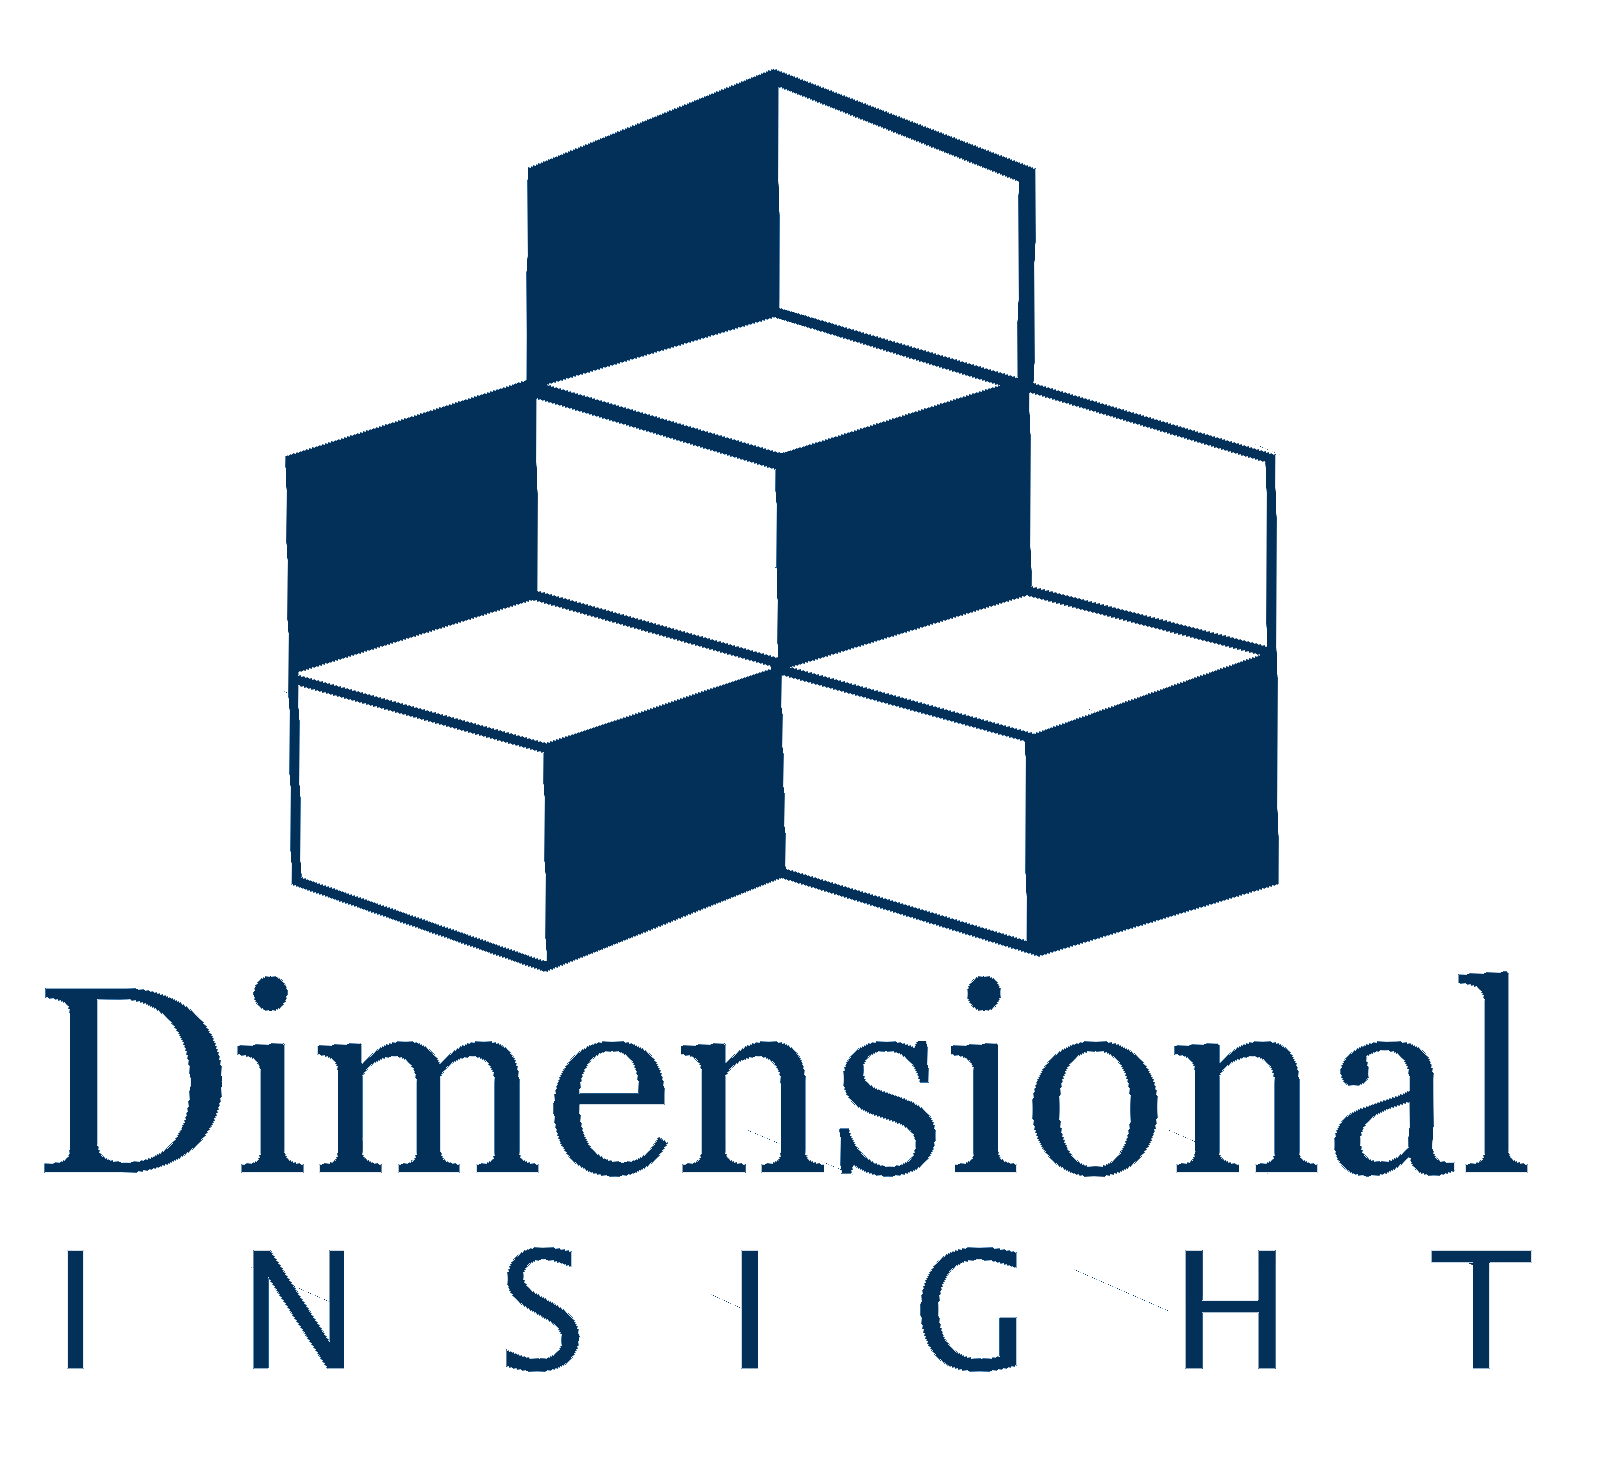 Business Intelligence para tu CRM solución con Dimensional Insight